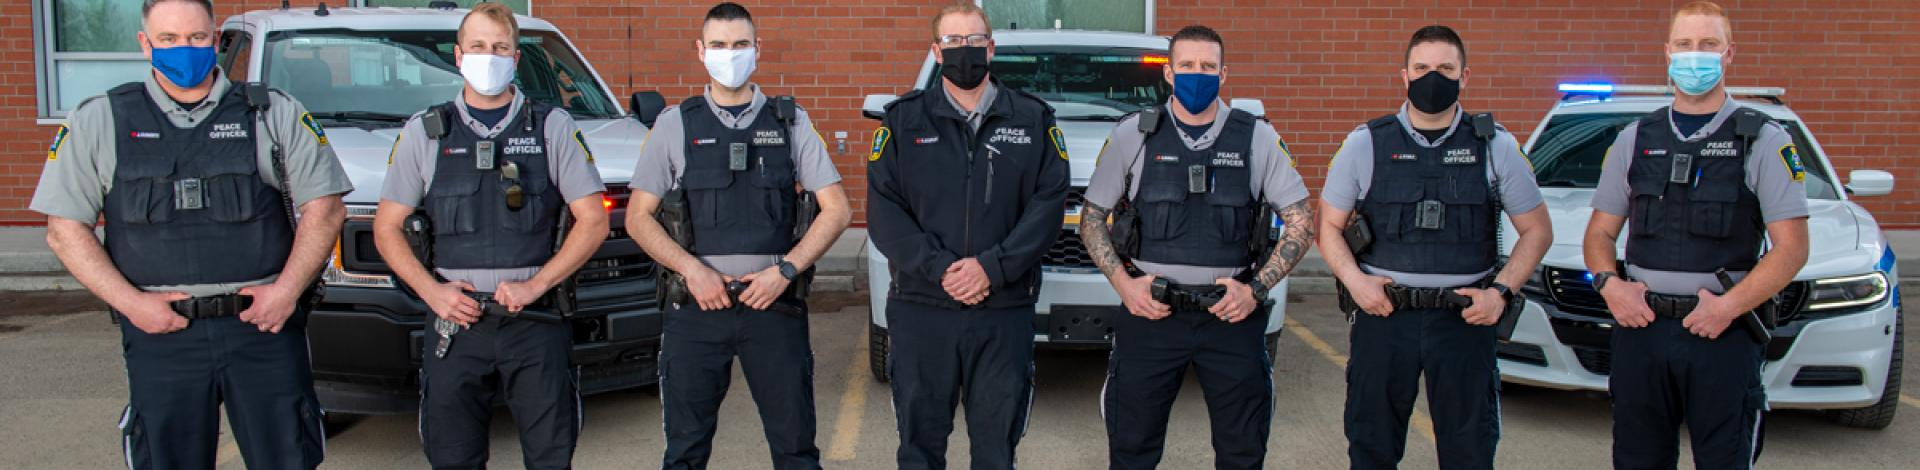 Municipal Enforcement bylaw officers standing in a row with masks on